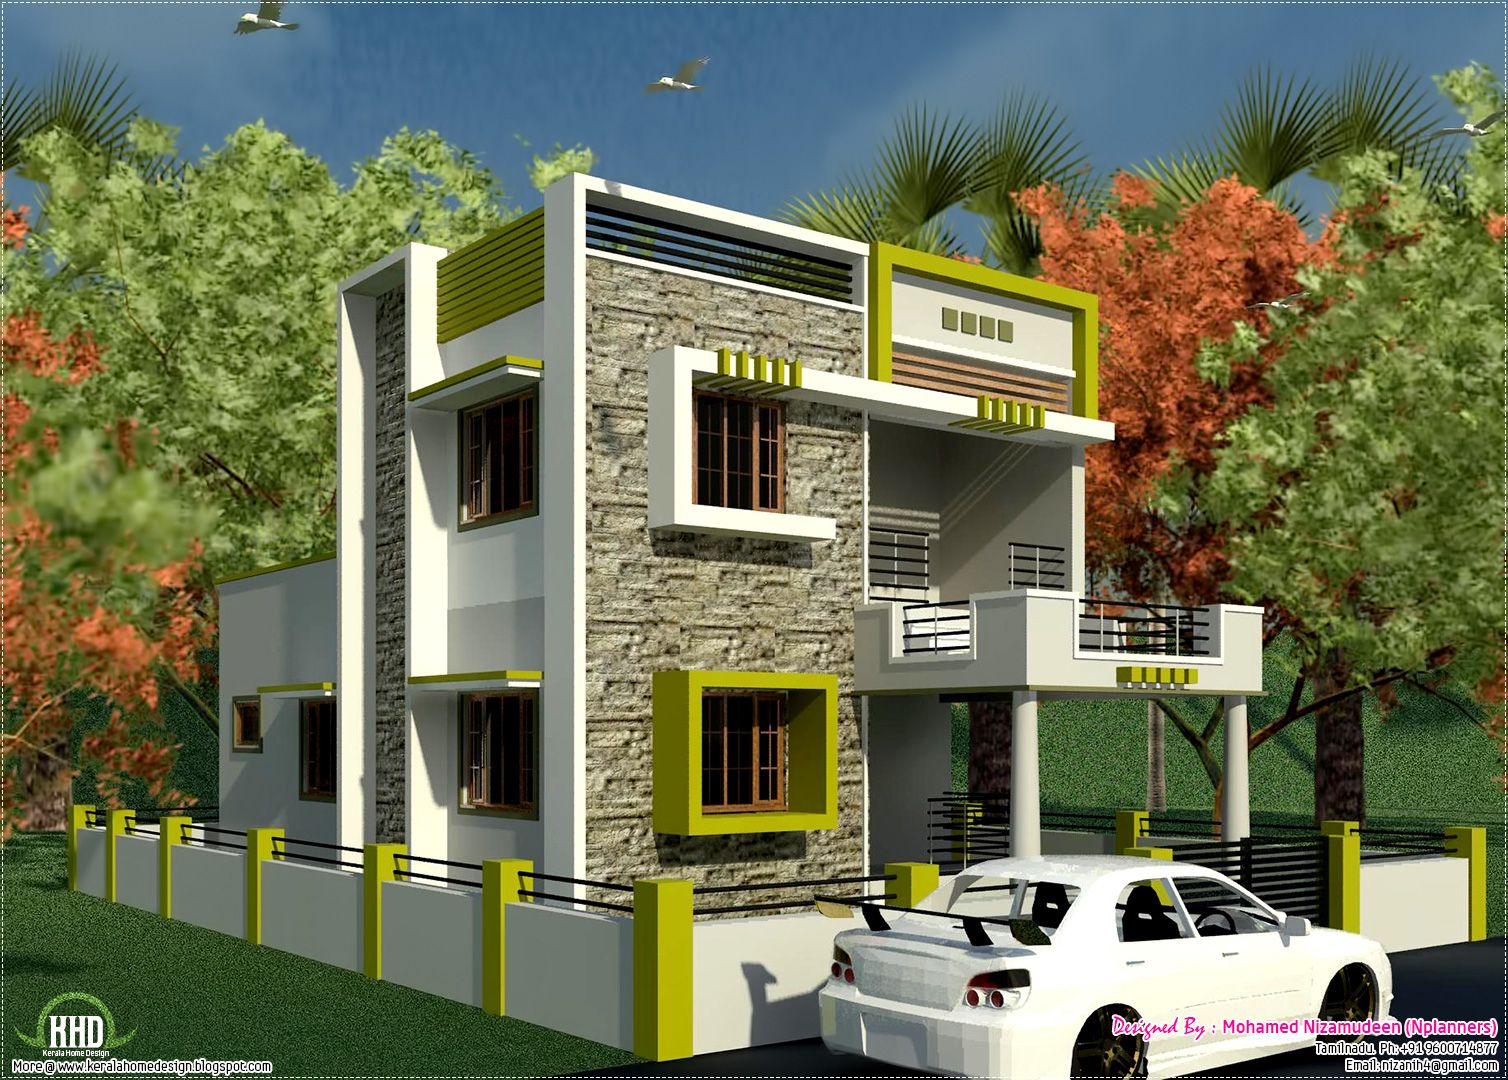 Small house with car park design tobfav com ideas for for Home exterior design